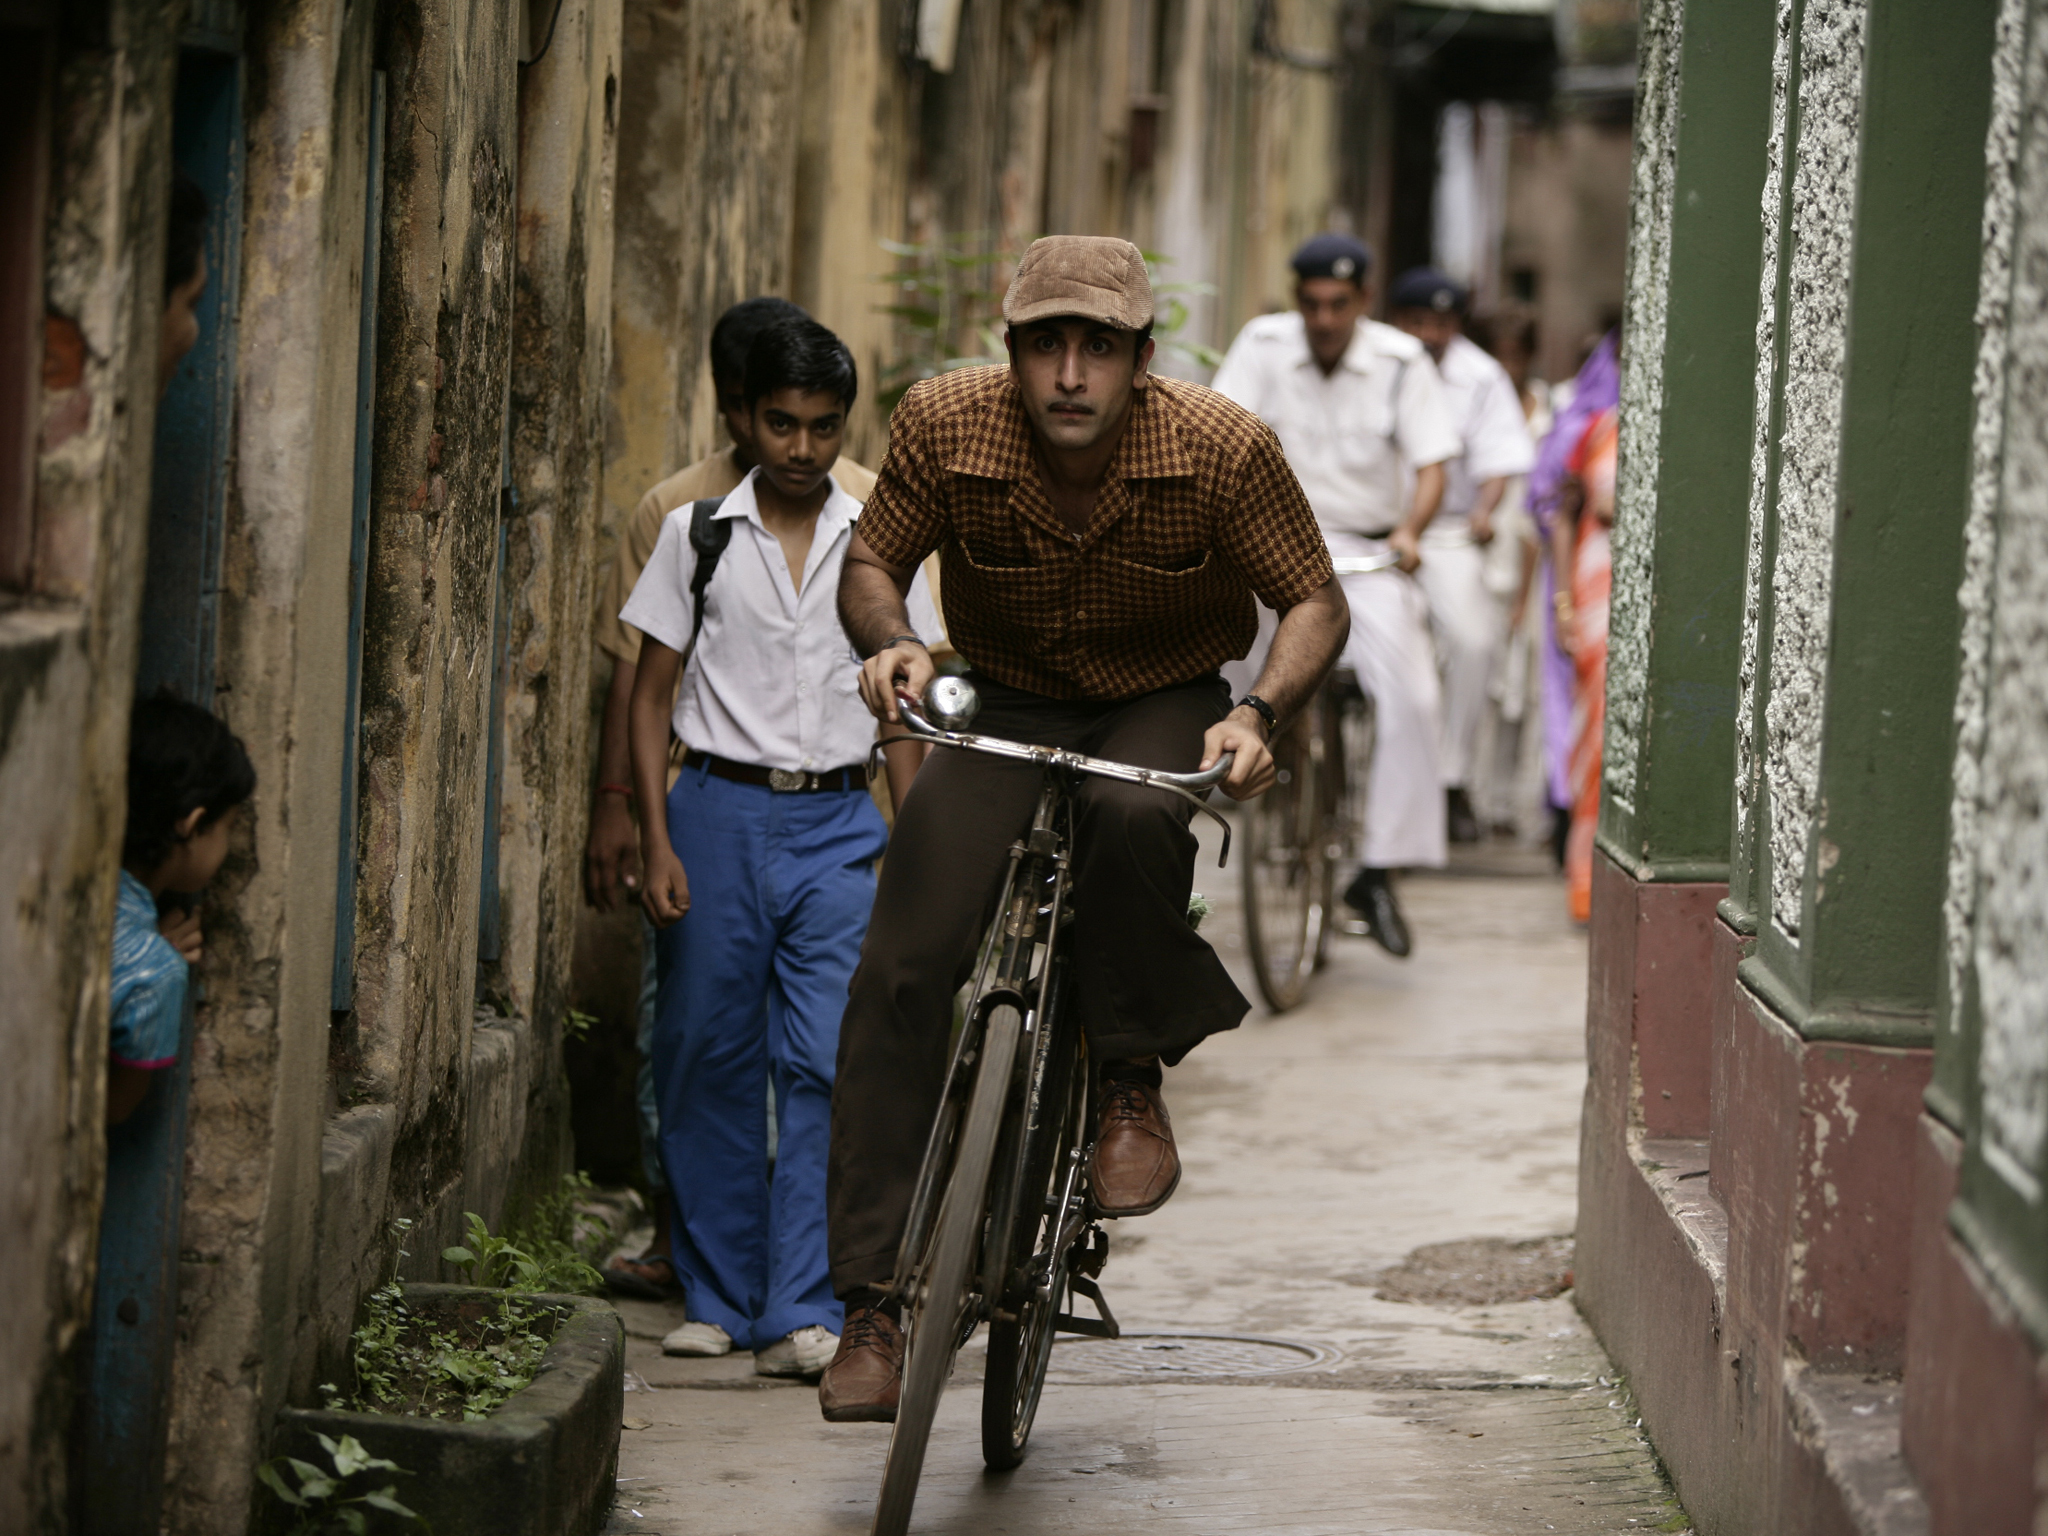 Bollywood movie: Barfi!